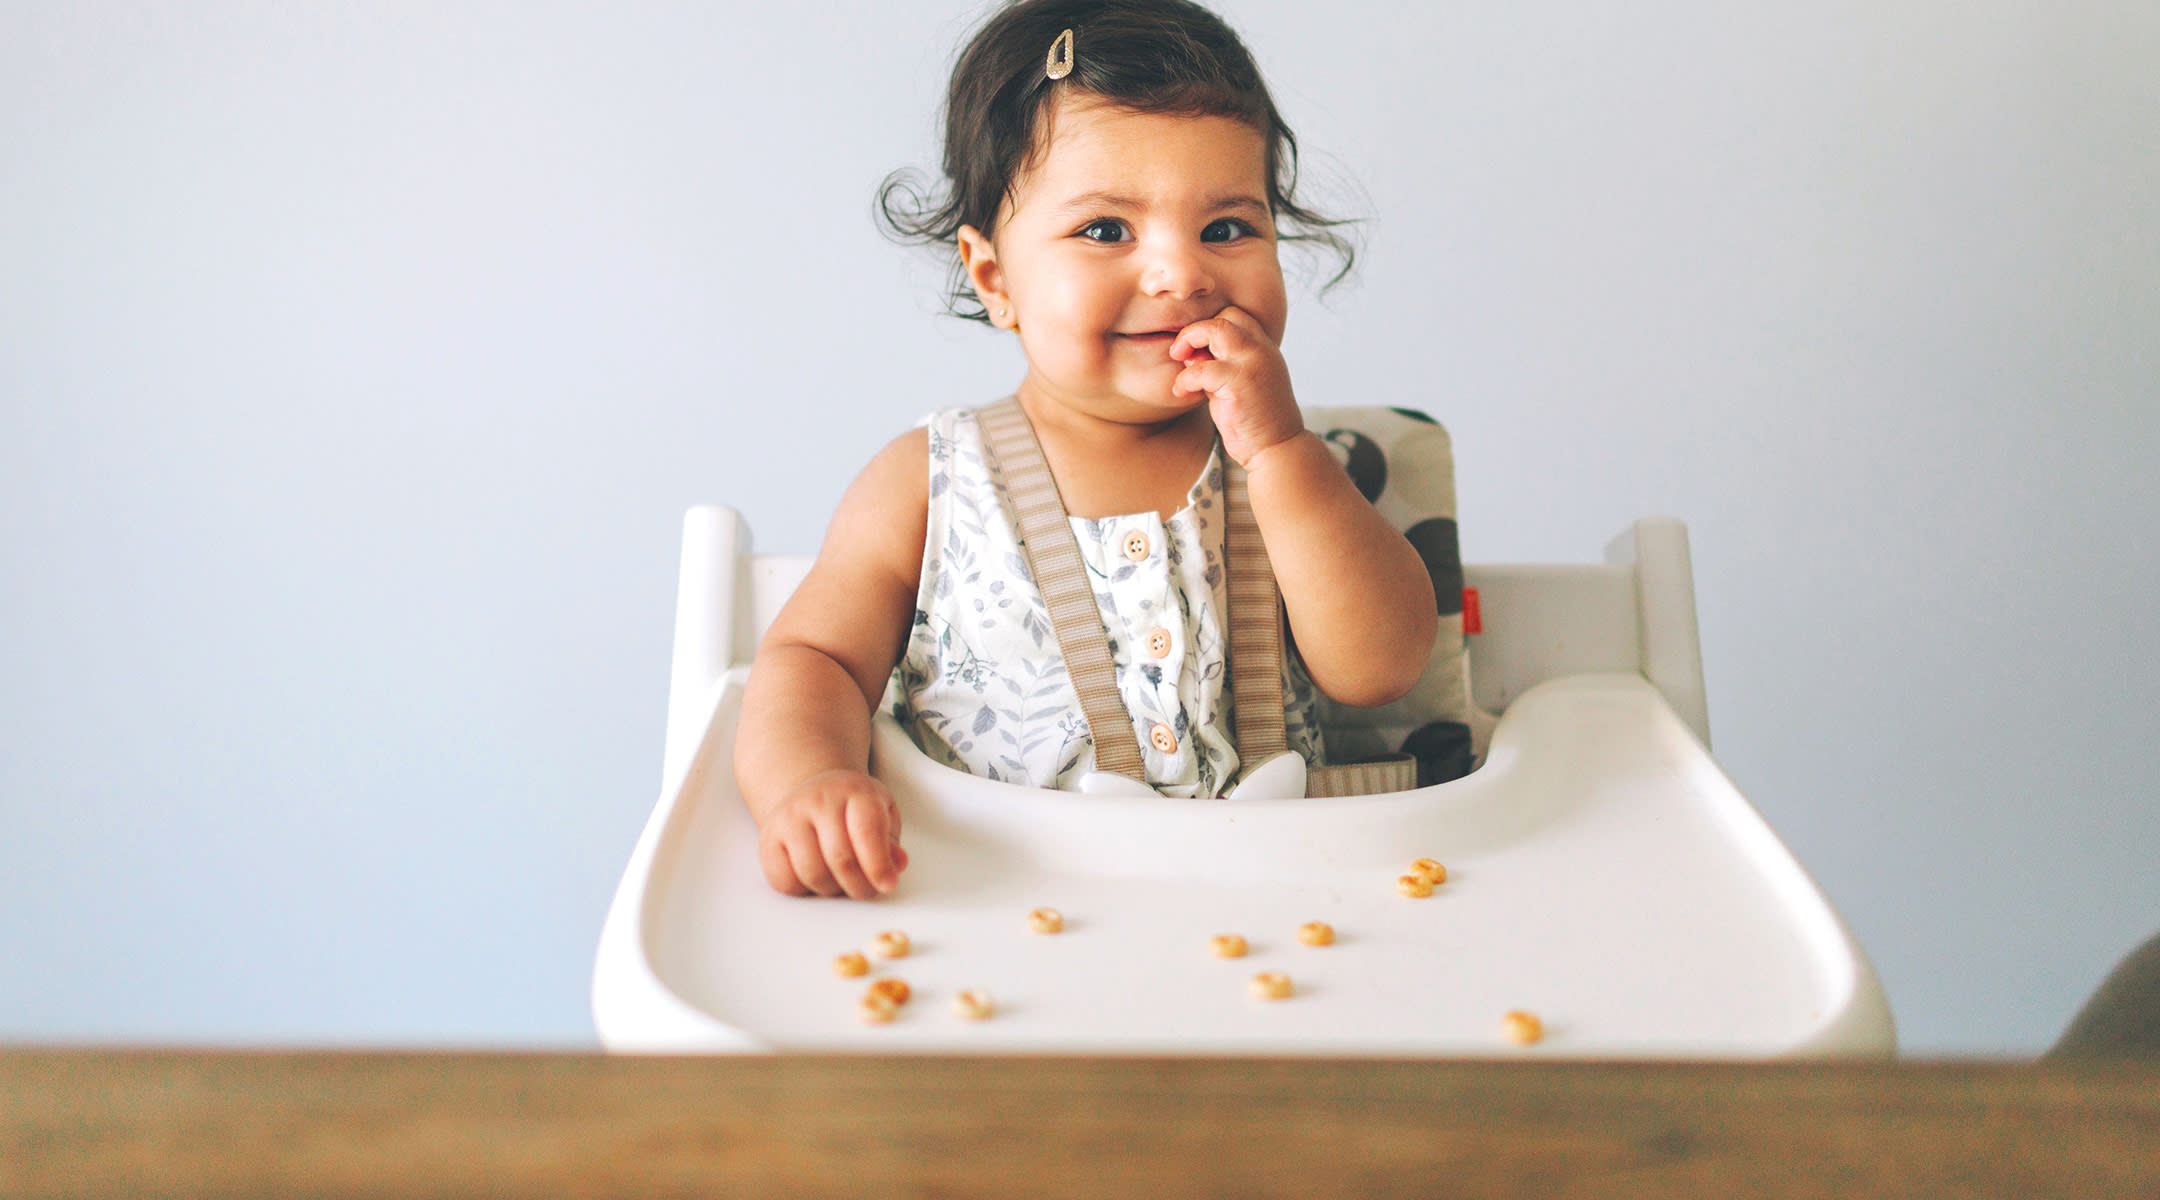 happy baby eating solid foods in high chair